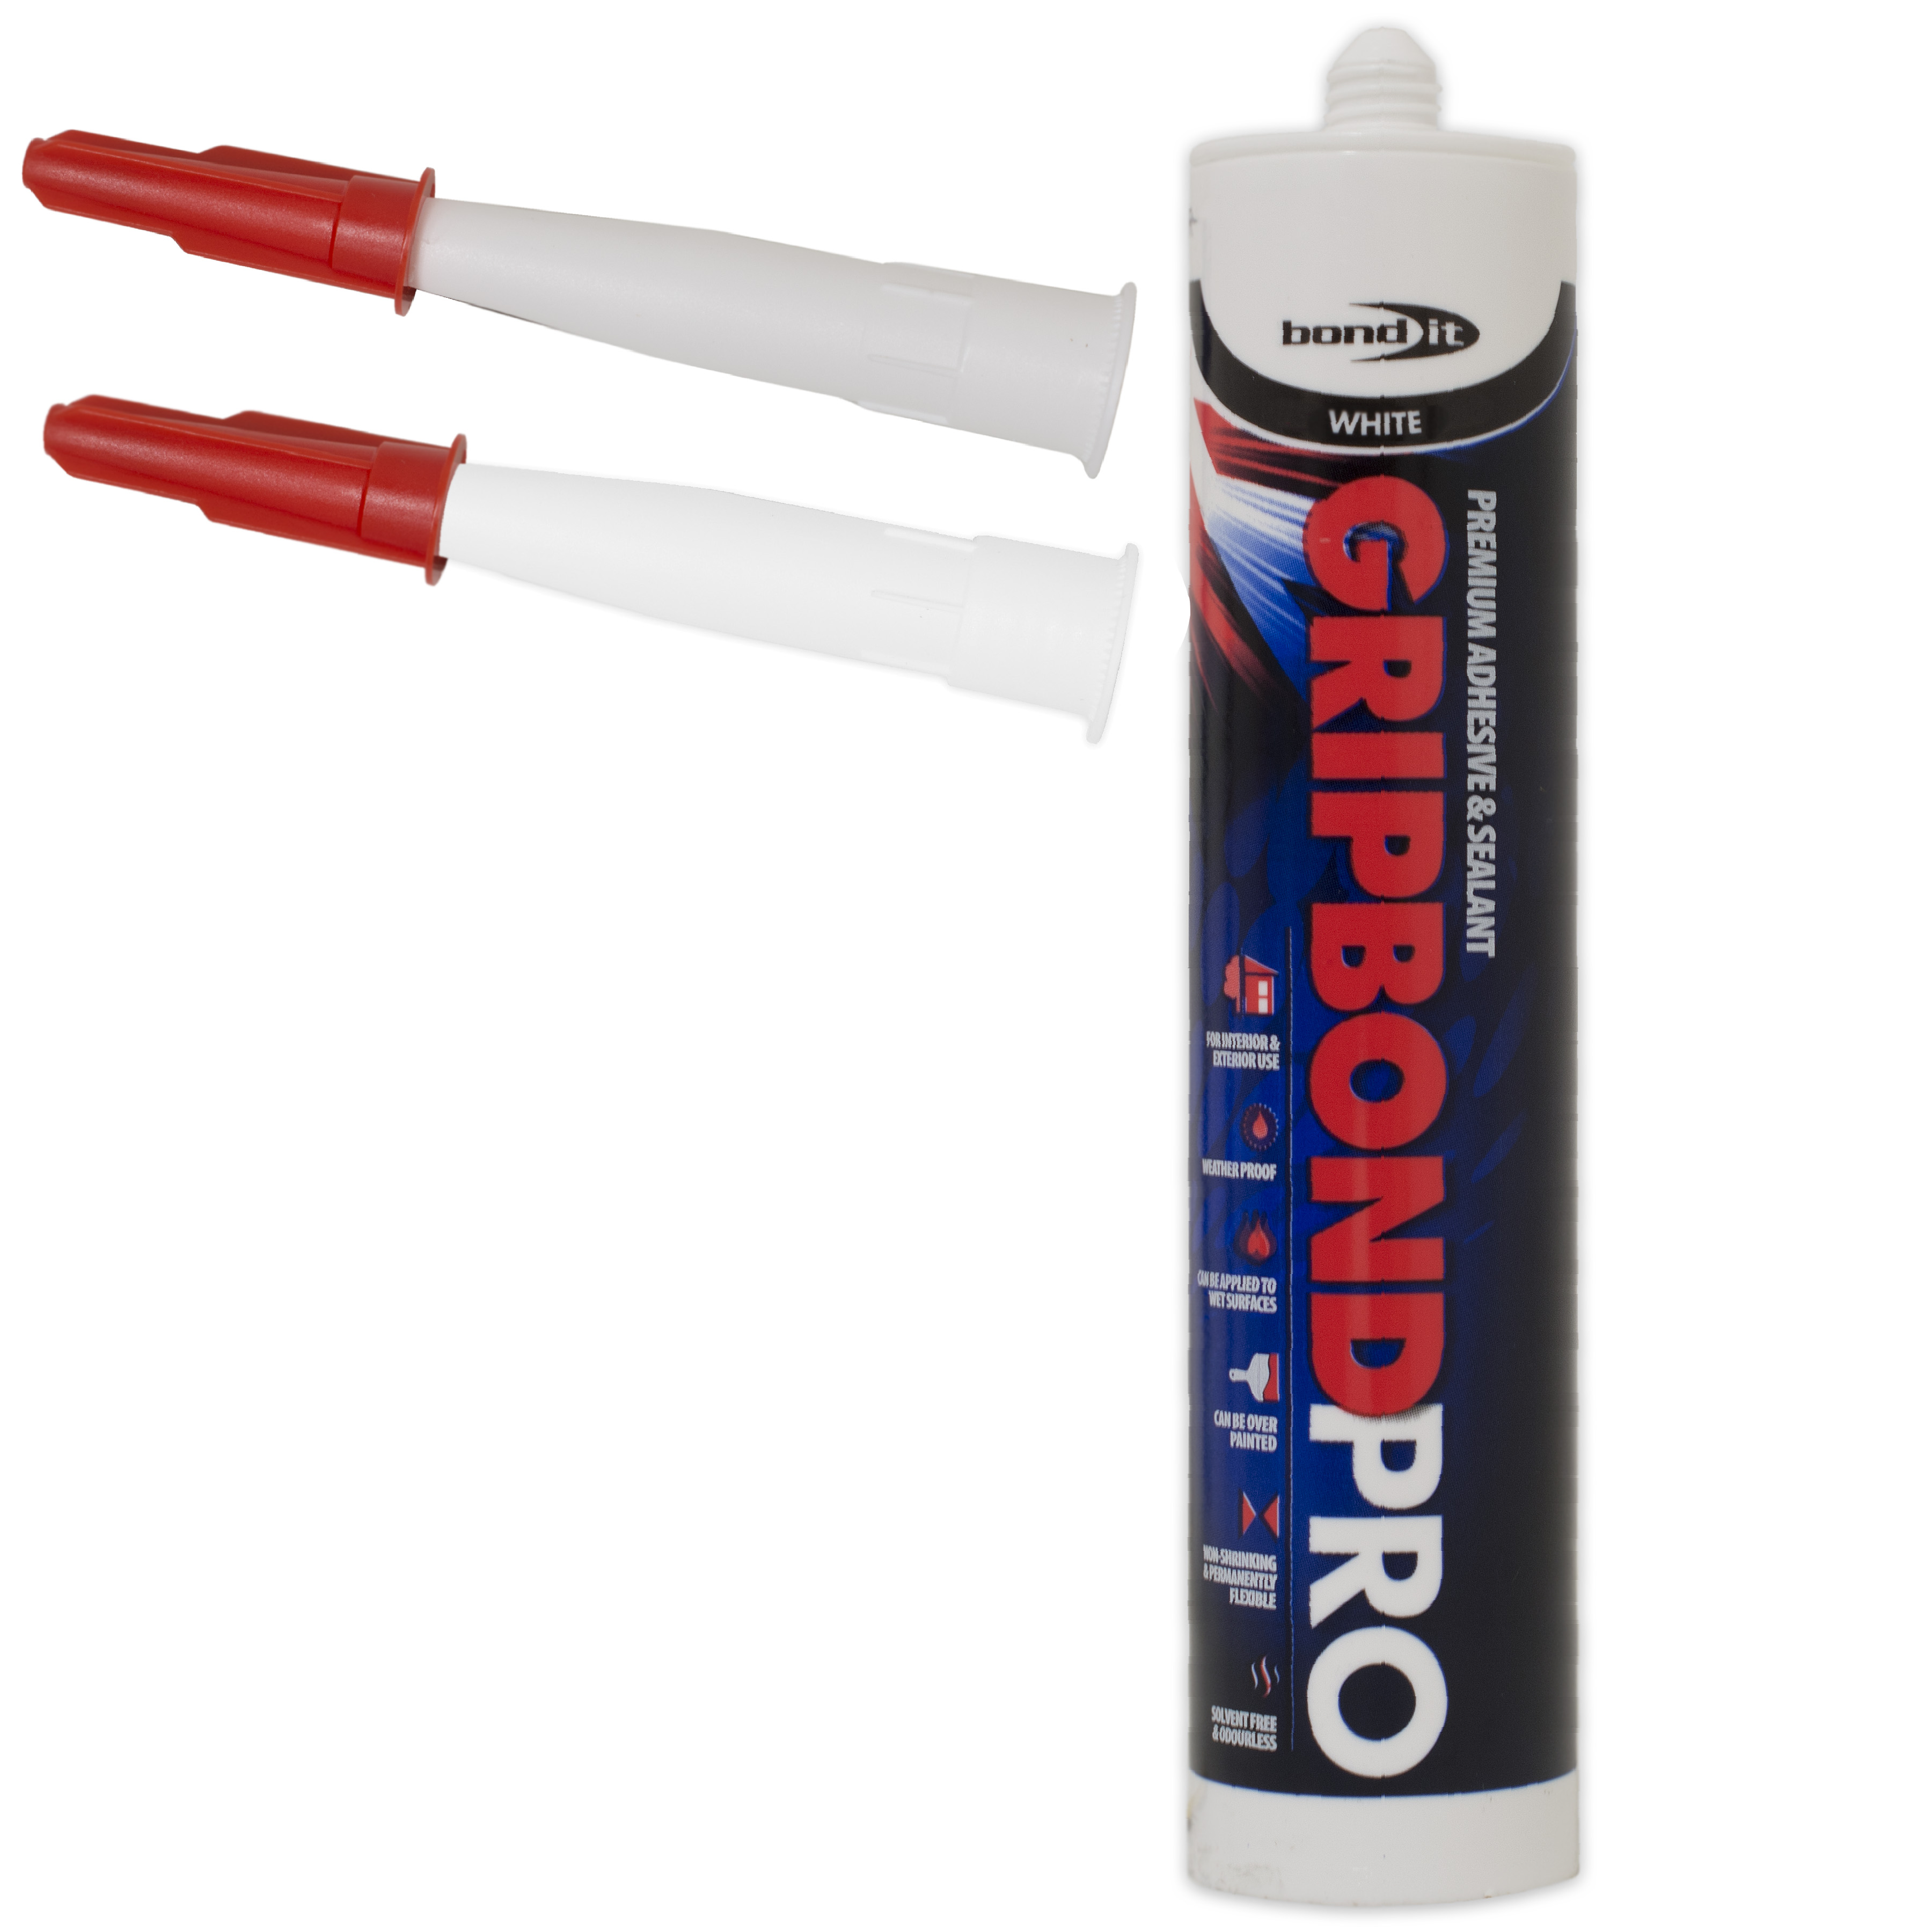 Gb Pro Super Strong Adhesive Hybrid Polymer Silicone